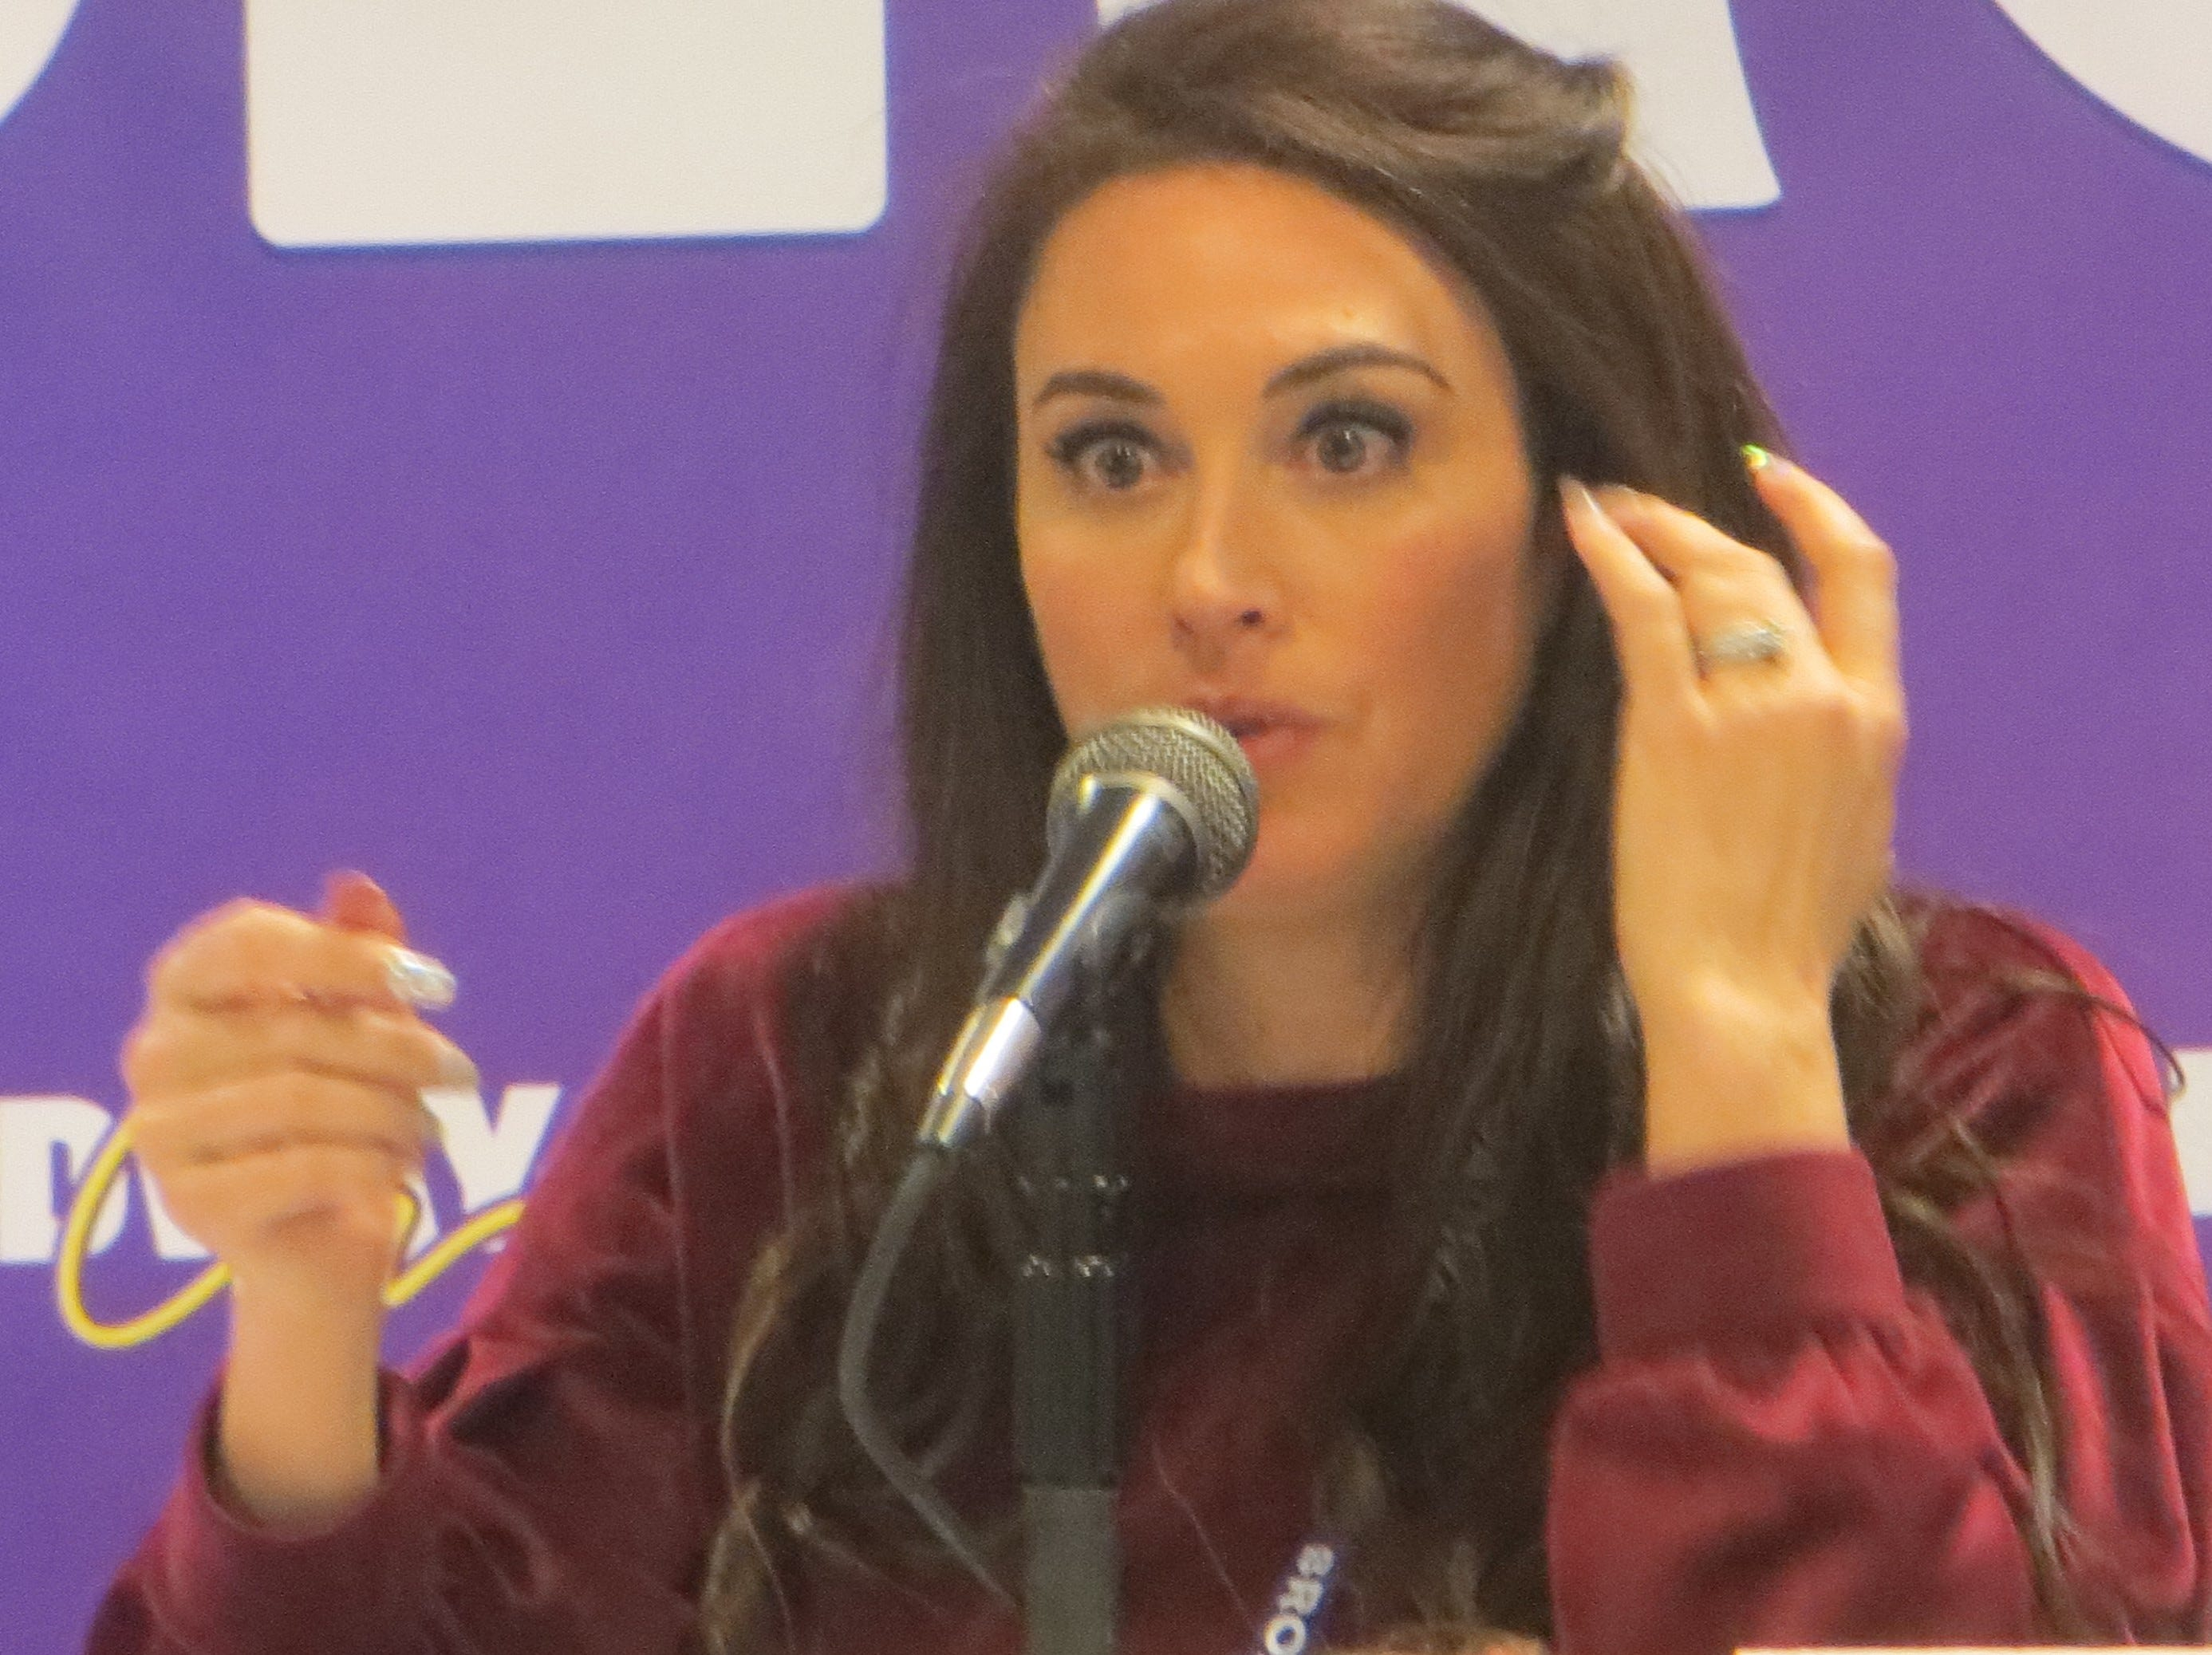 Lesli Margherita speaks during a panel at BroadwayCon 2019, held Jan. 11 to 13, 2019, at the New York Hilton Midtown in Manhattan.